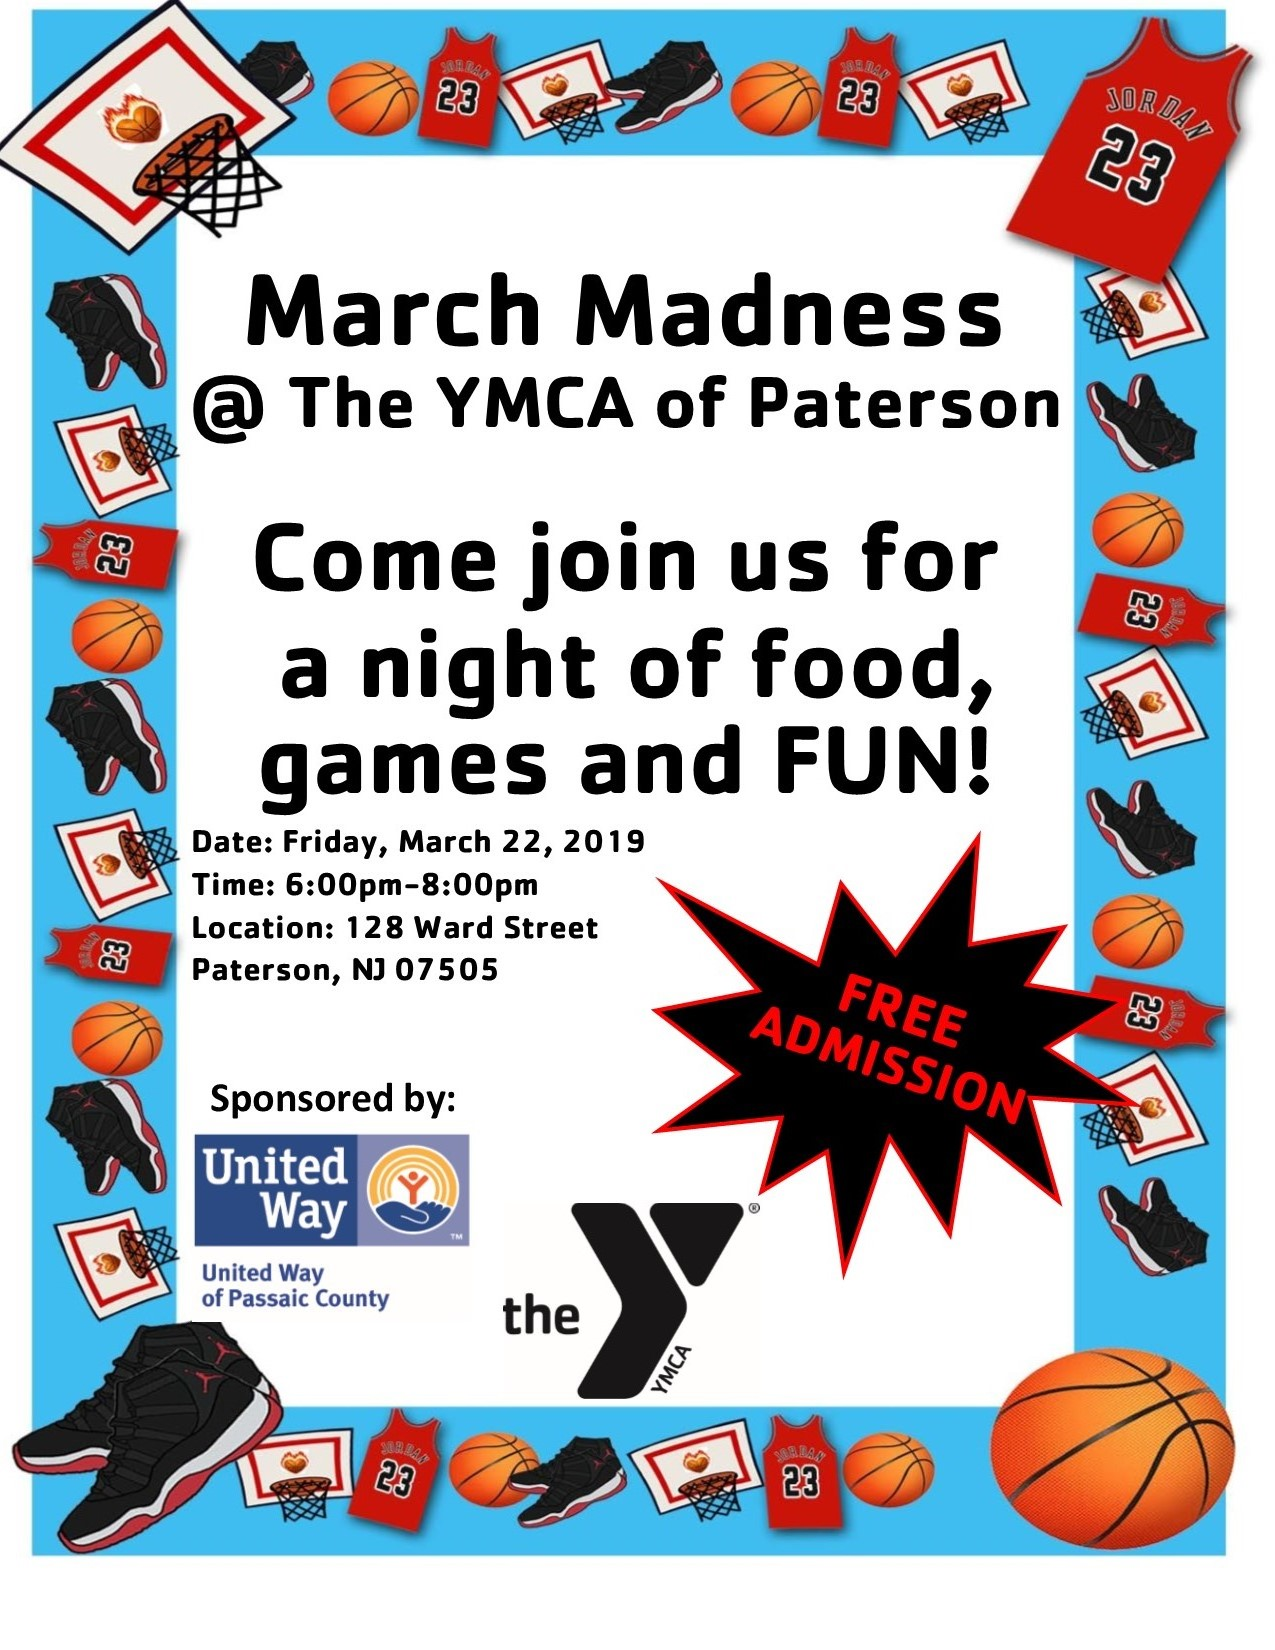 New YMCA Event March 22nd!!!!